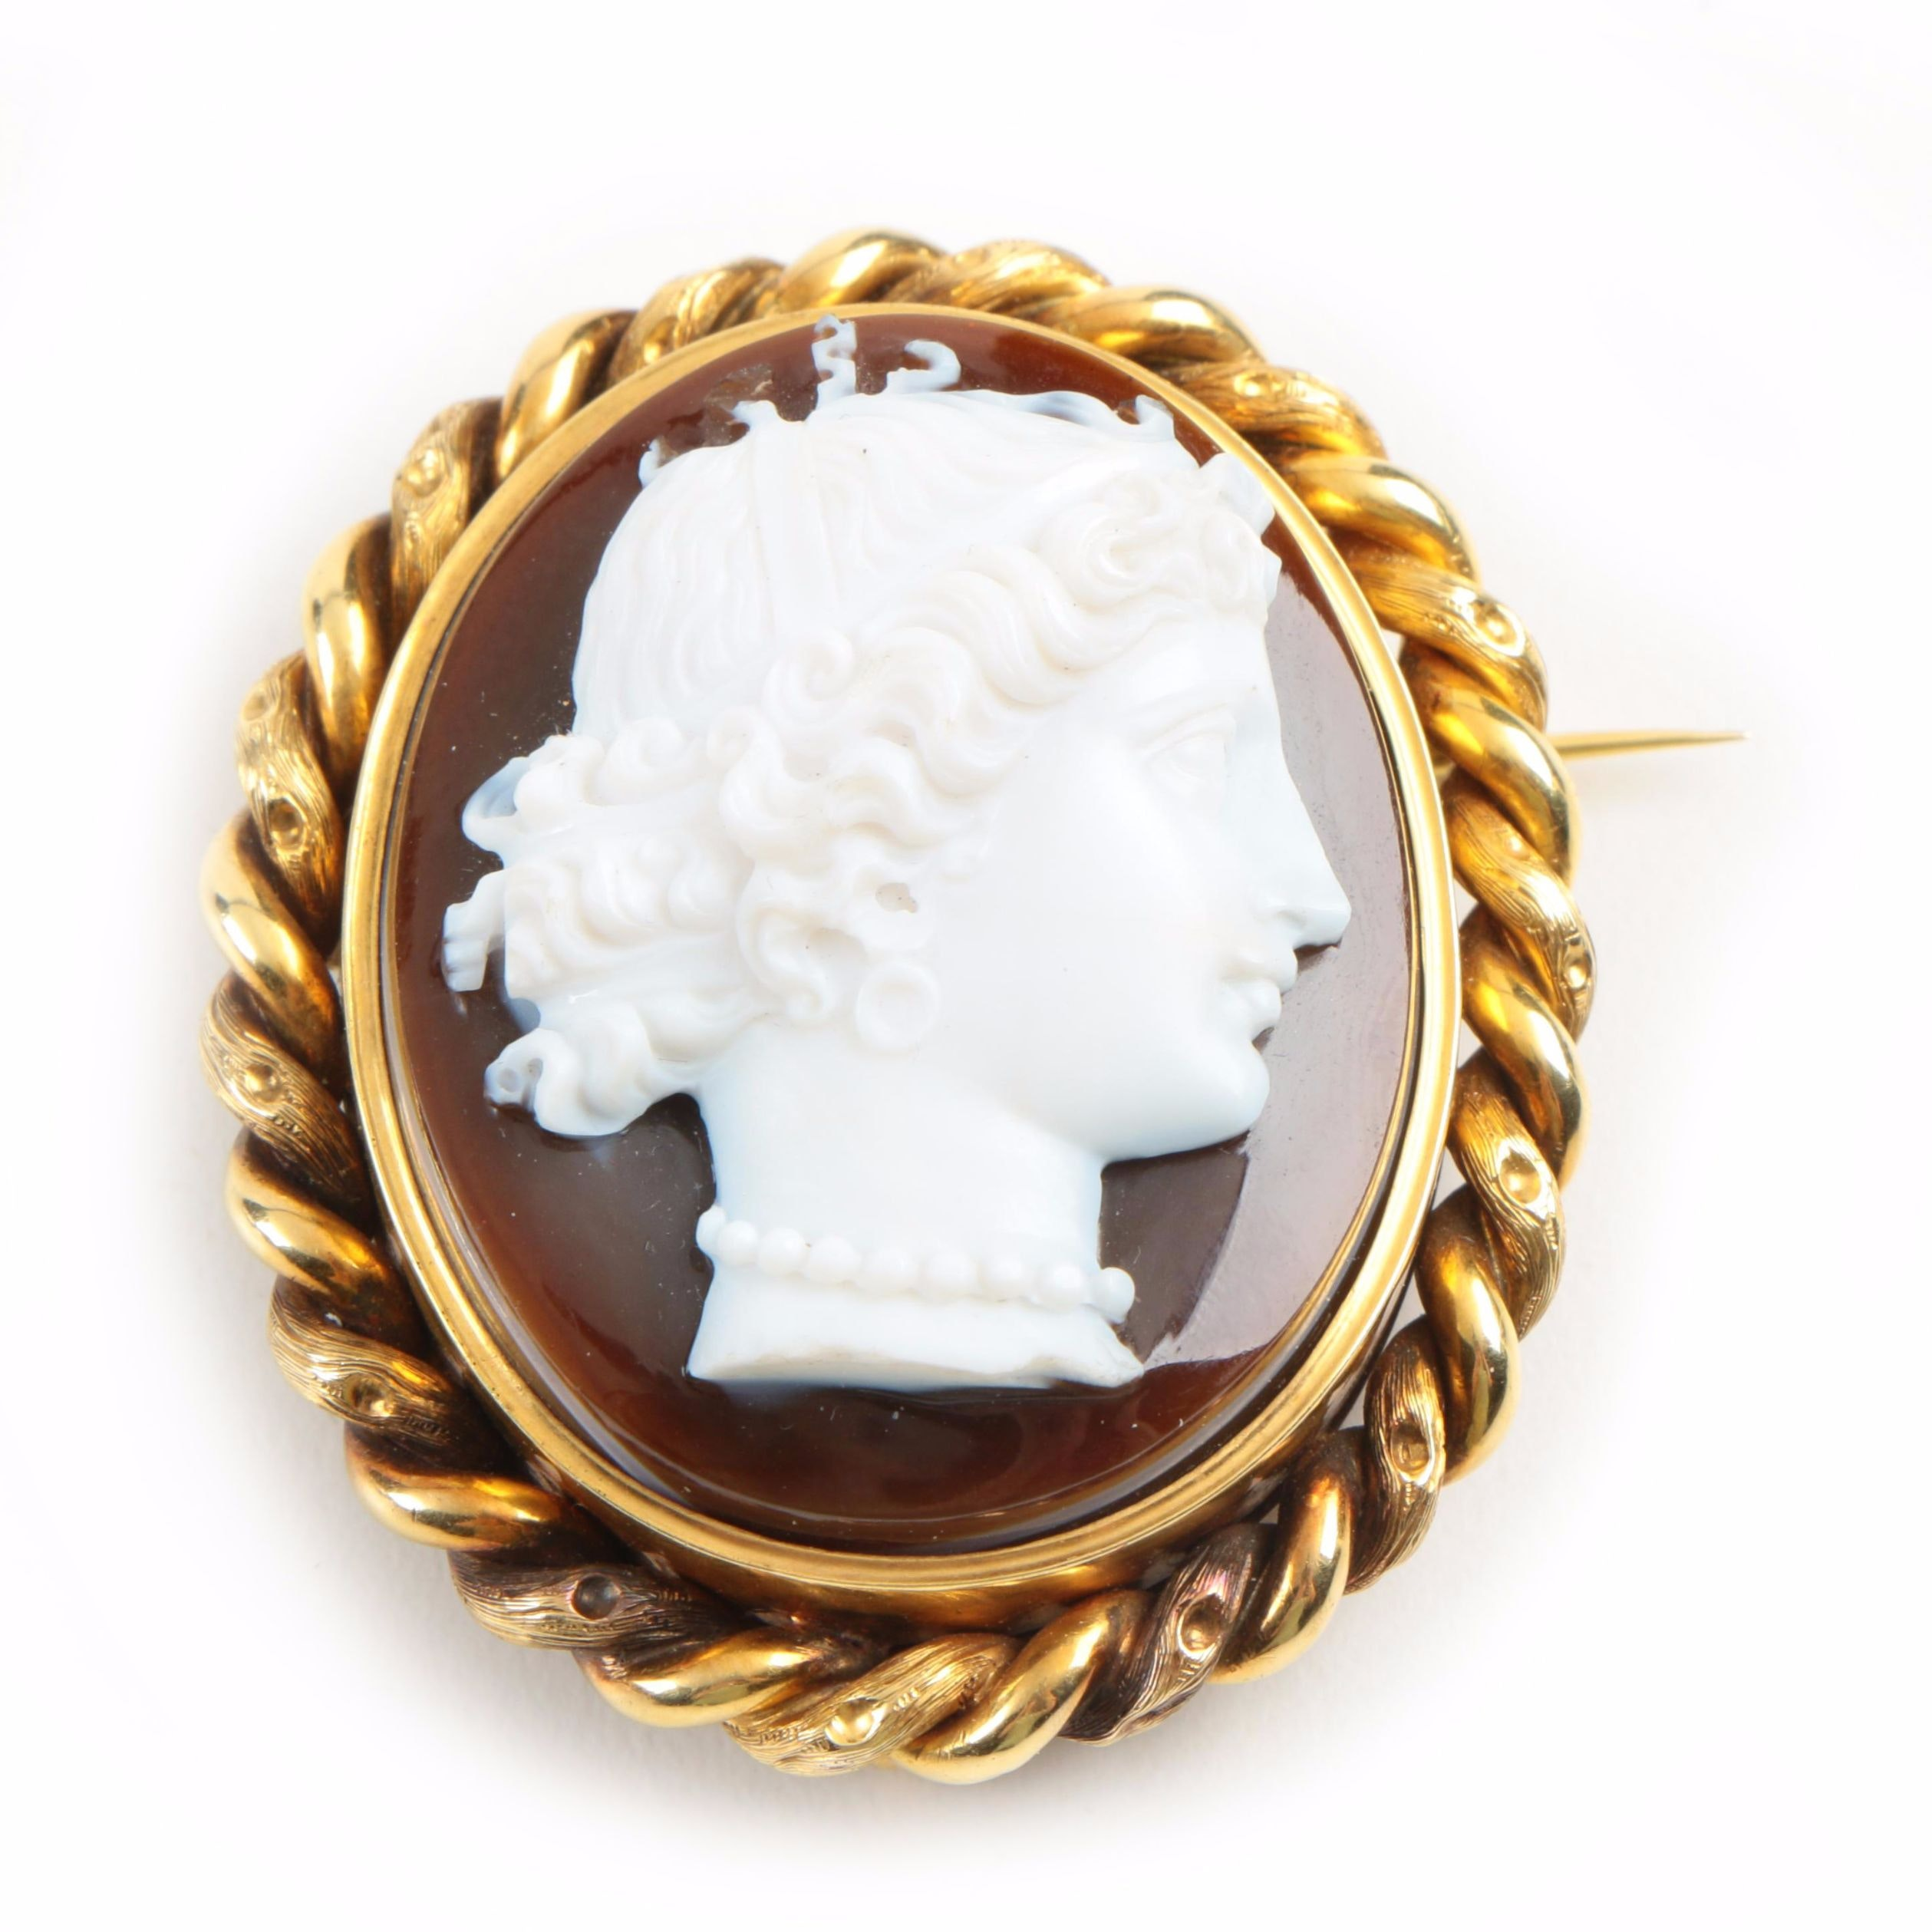 Antique 18K Yellow Gold Sardonyx Cameo Oval Brooch with French Hallmark